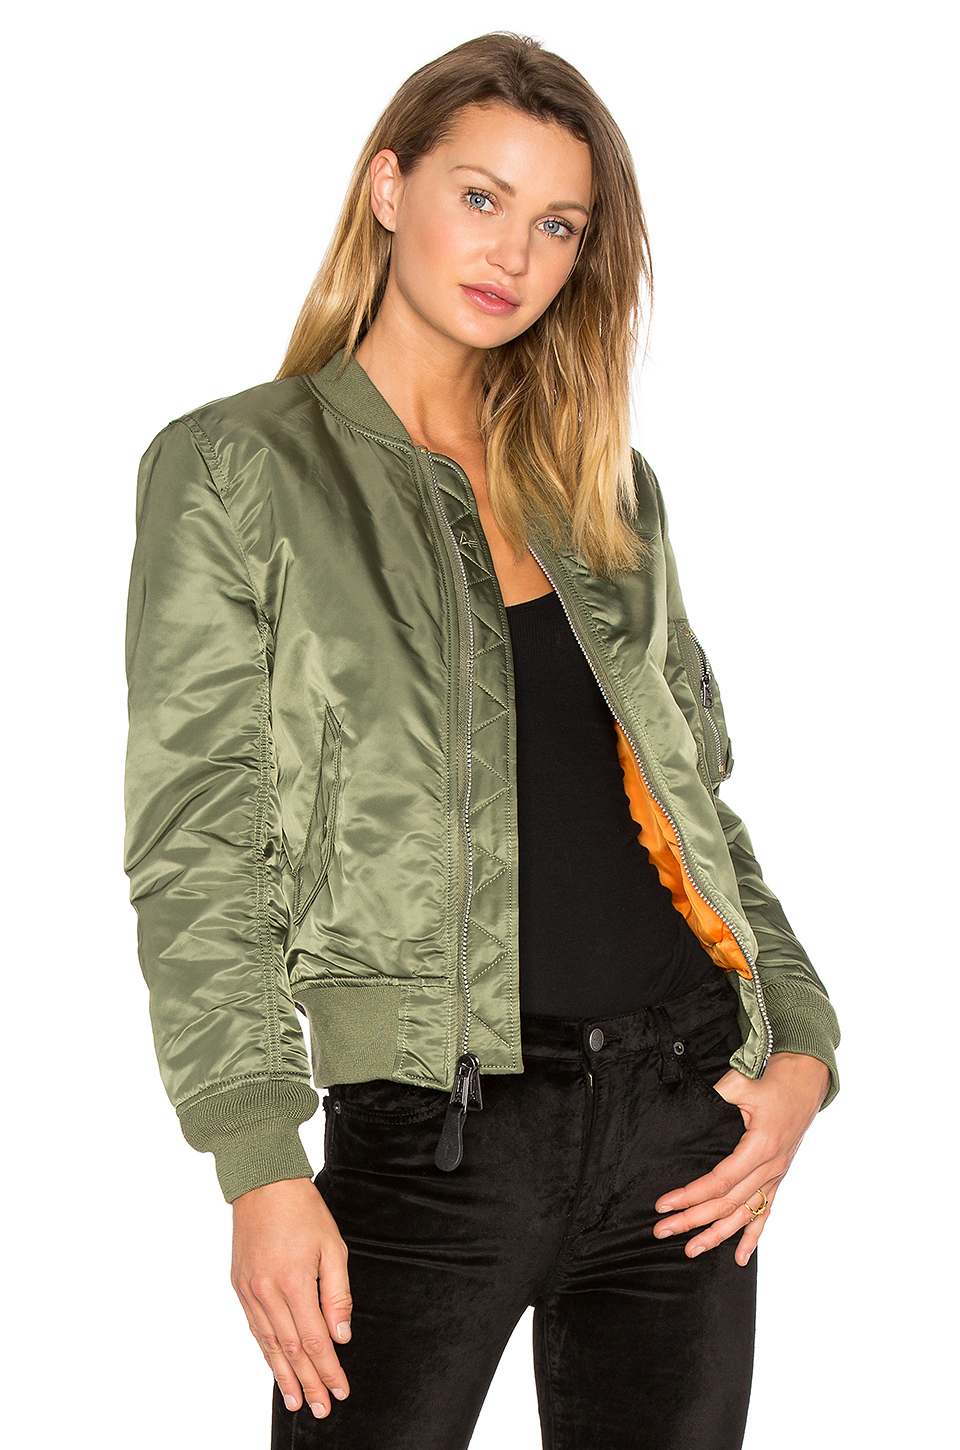 ALPHA INDUSTRIES Ma-1 Vf Reversible Nylon Bomber Jacket, Sage Green at REVOLVE